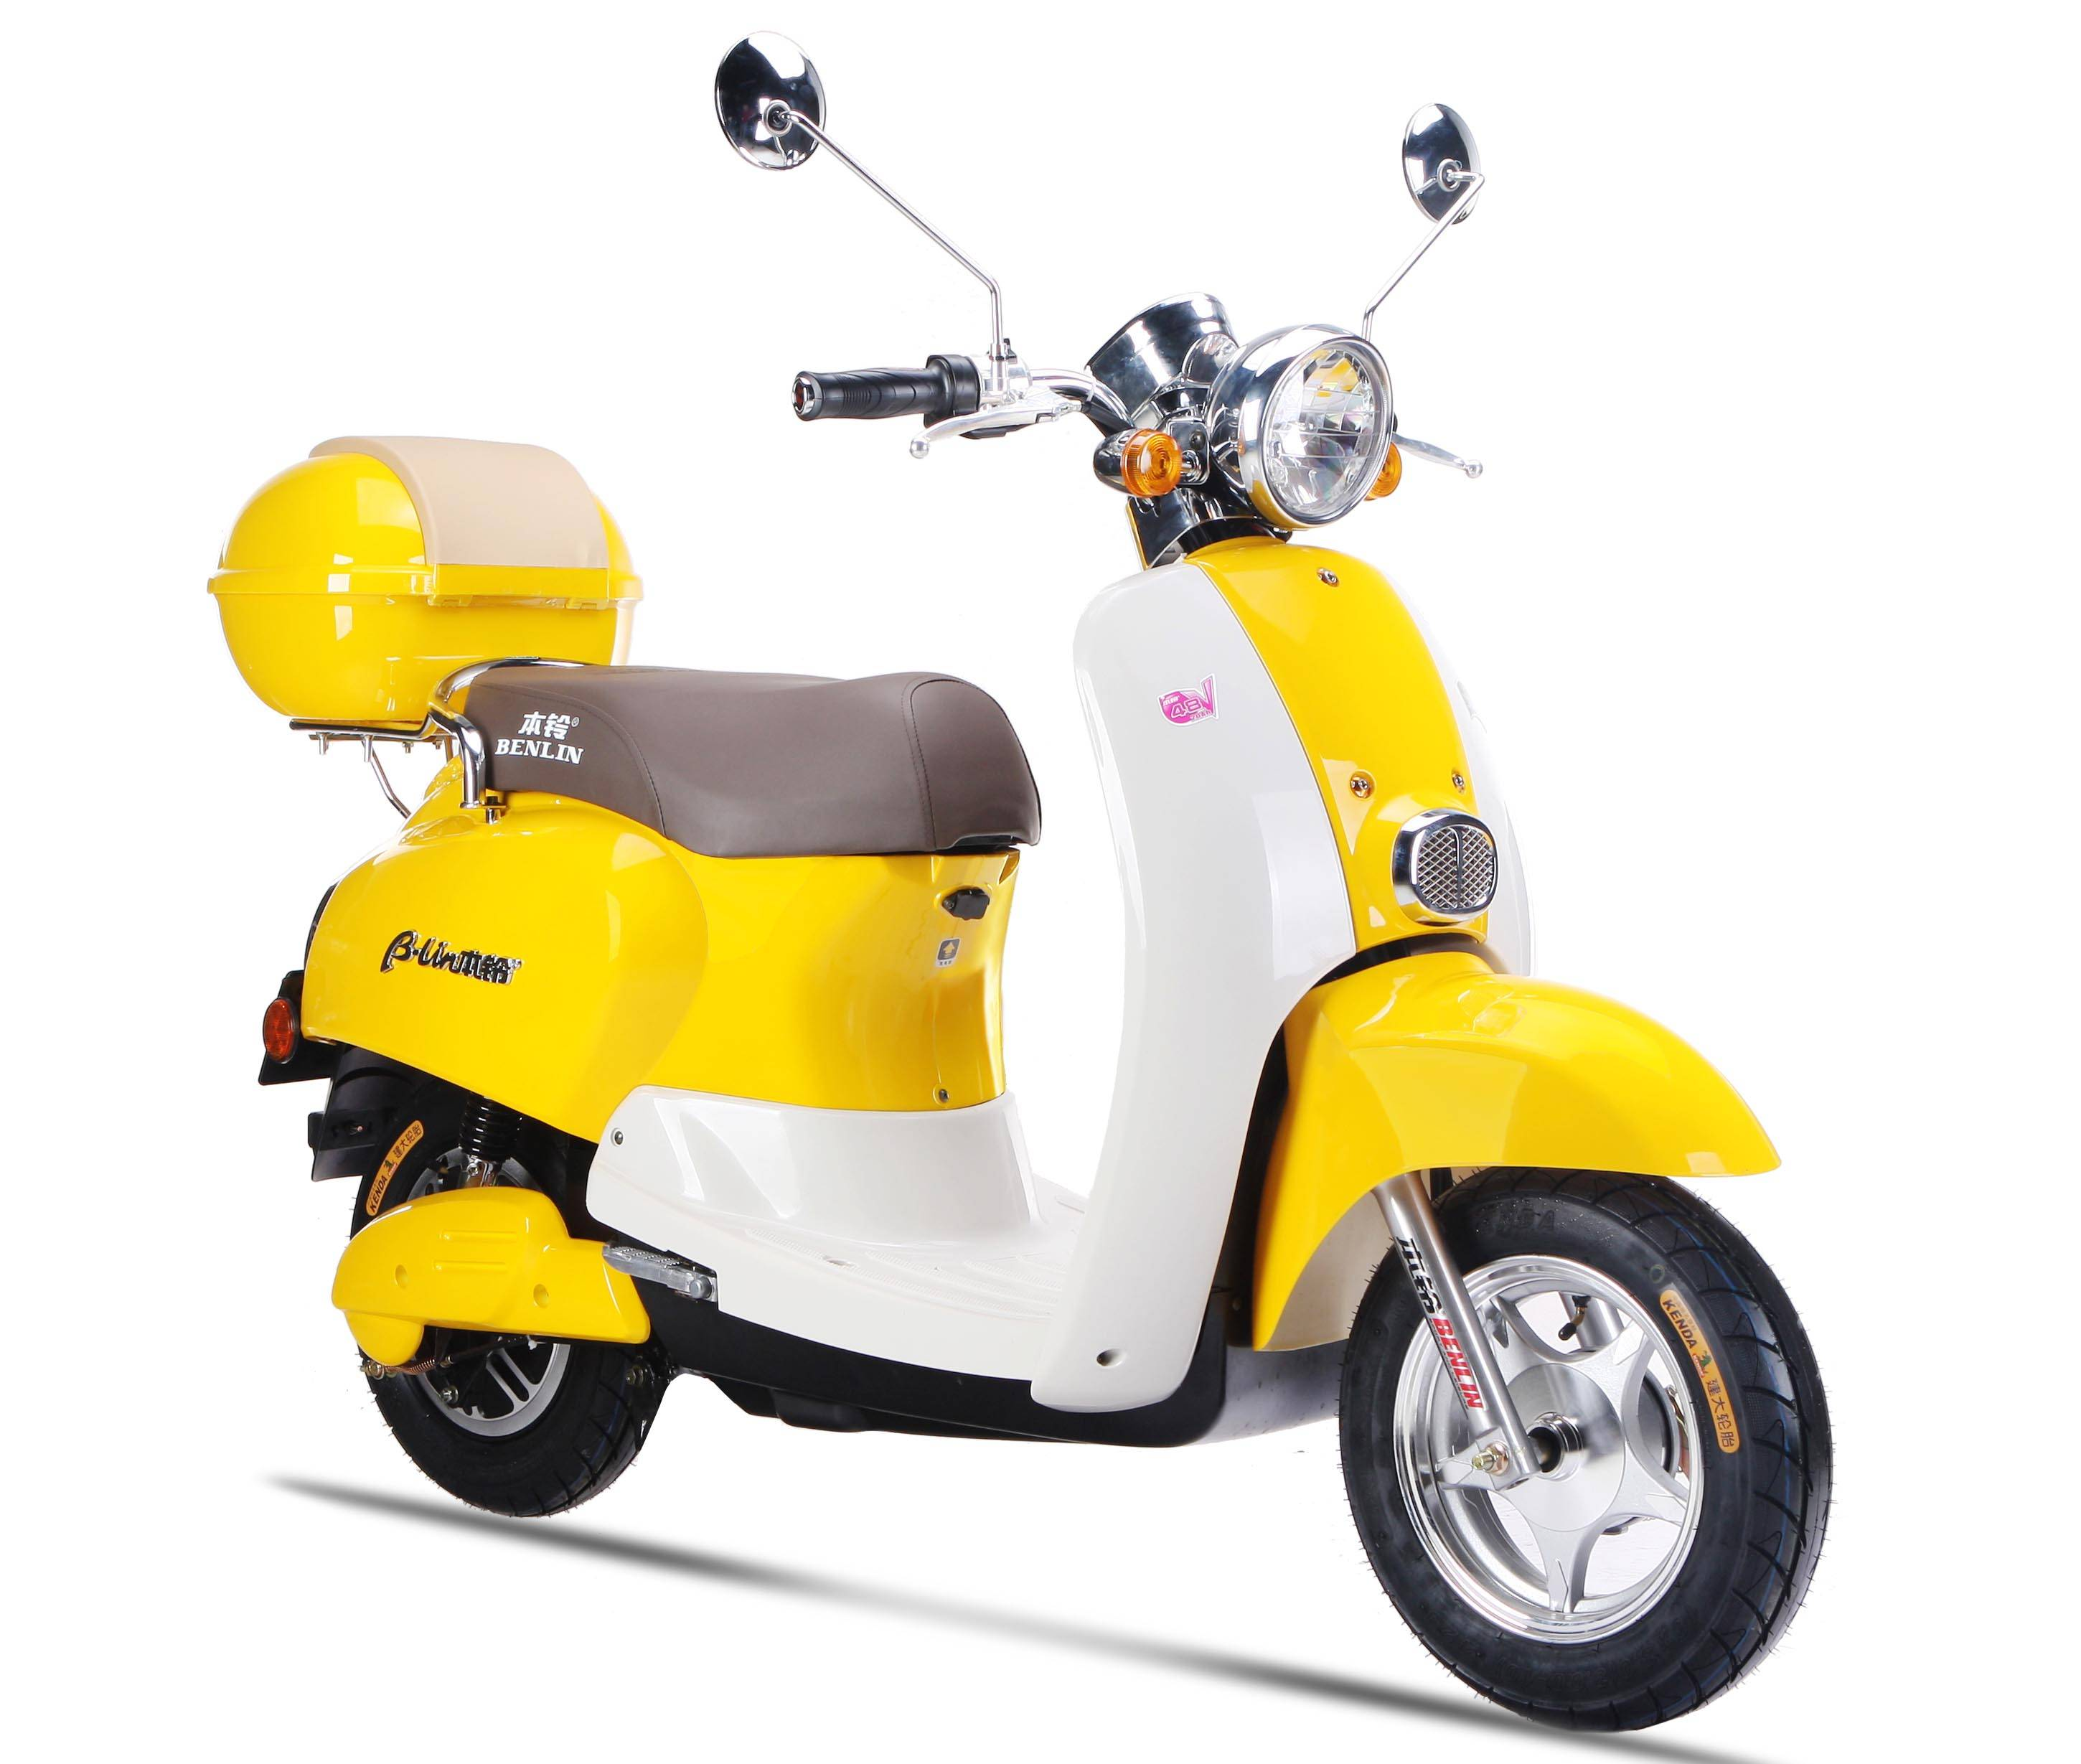 Benlg or OEM 1000W Electric motorcycle Made in China export to Indonesia and Thailand